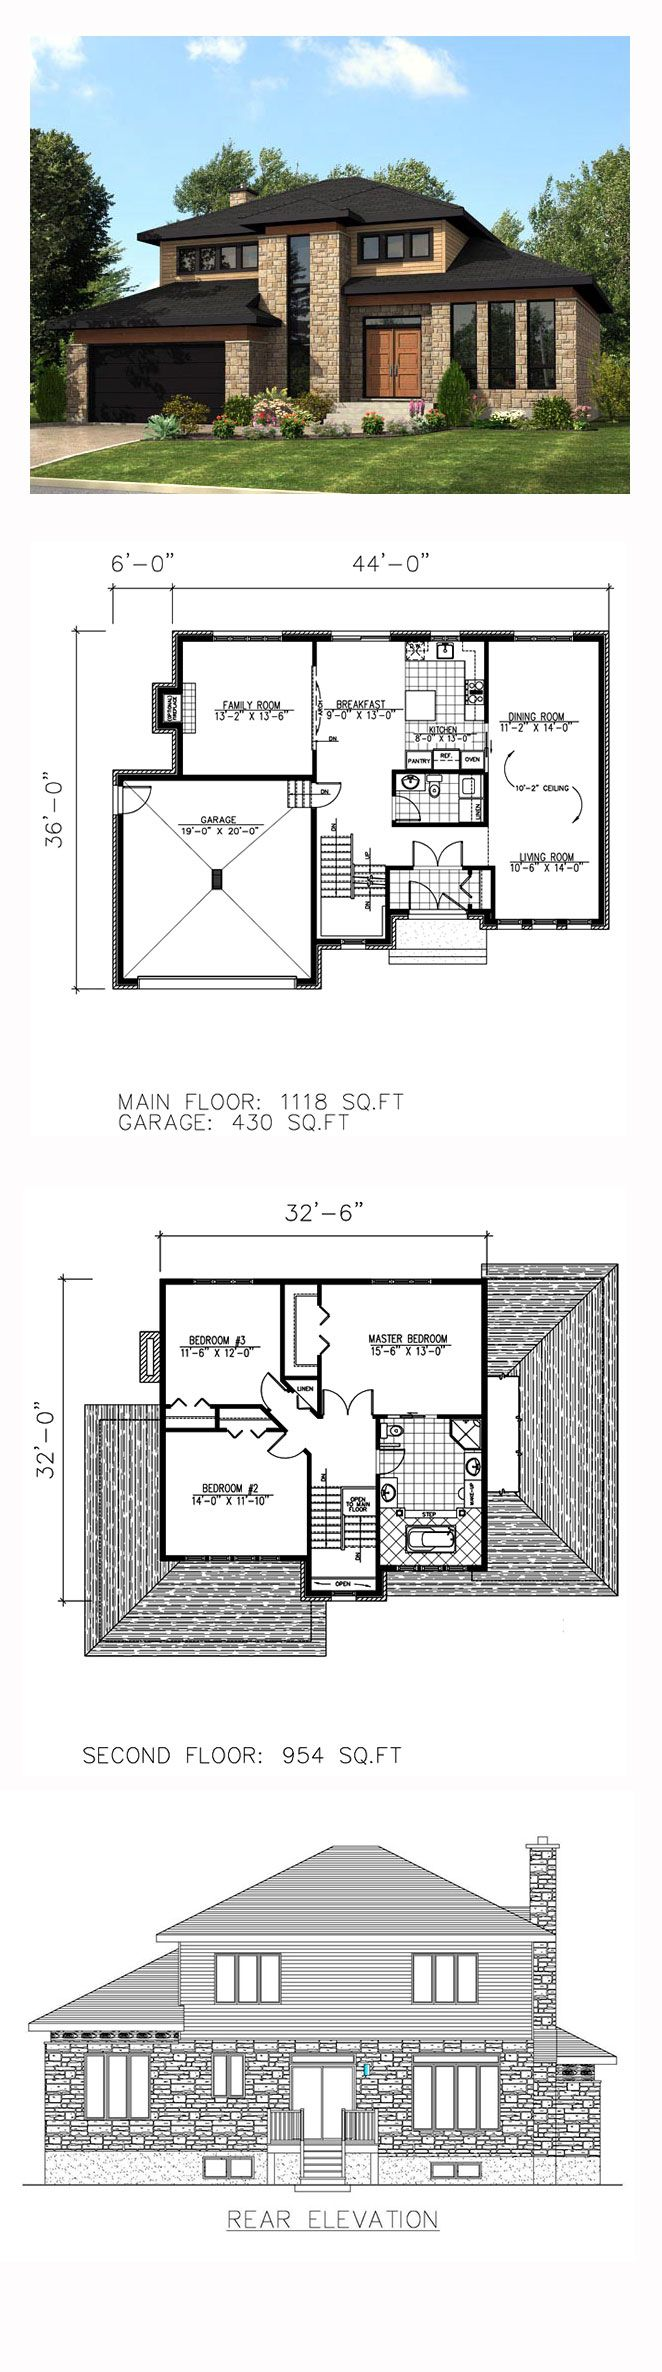 Drawn house contemporary house 949 House best 50323 house